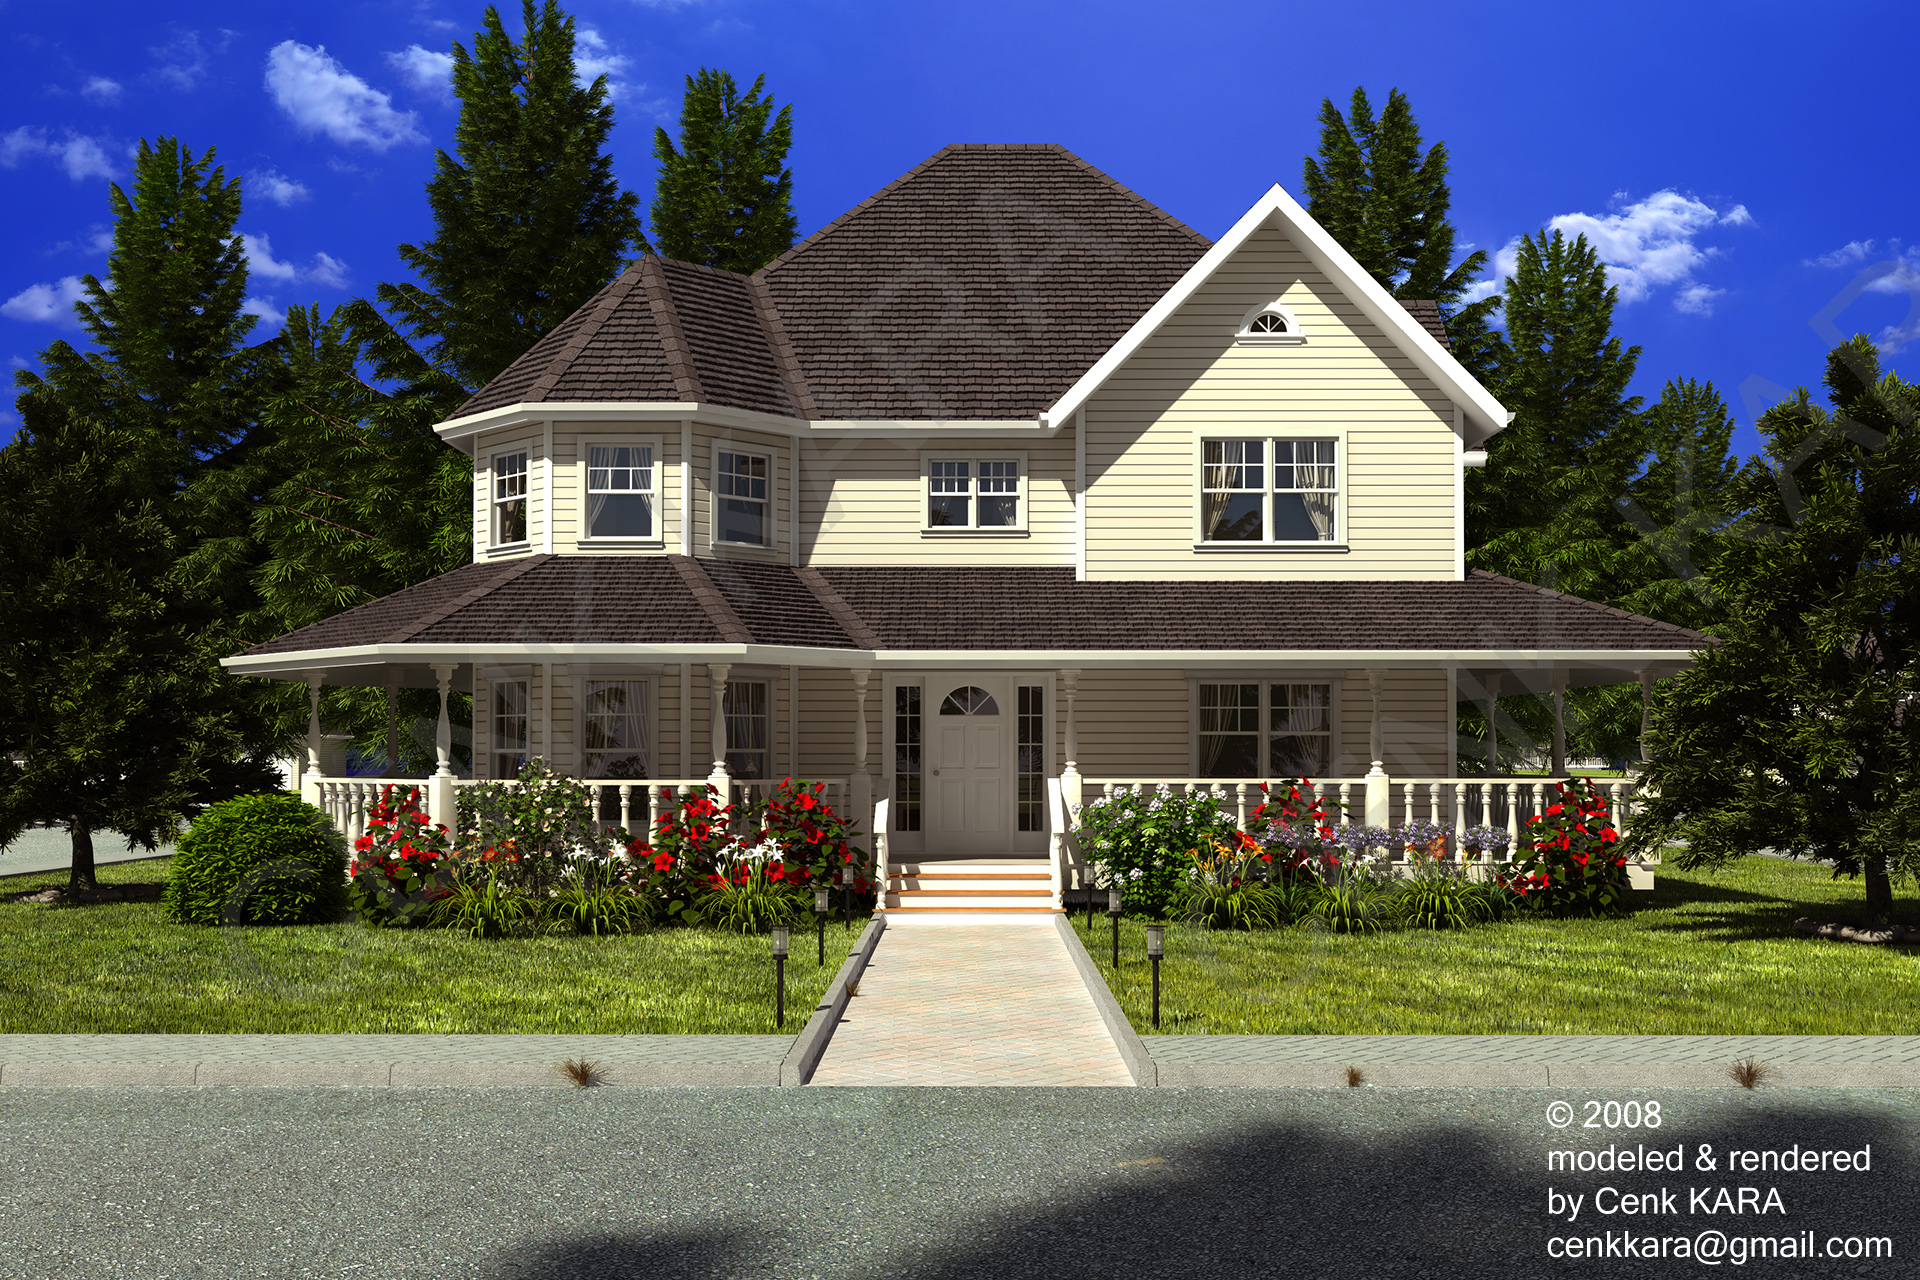 Style Home style home rendering by cenkkara on deviantart